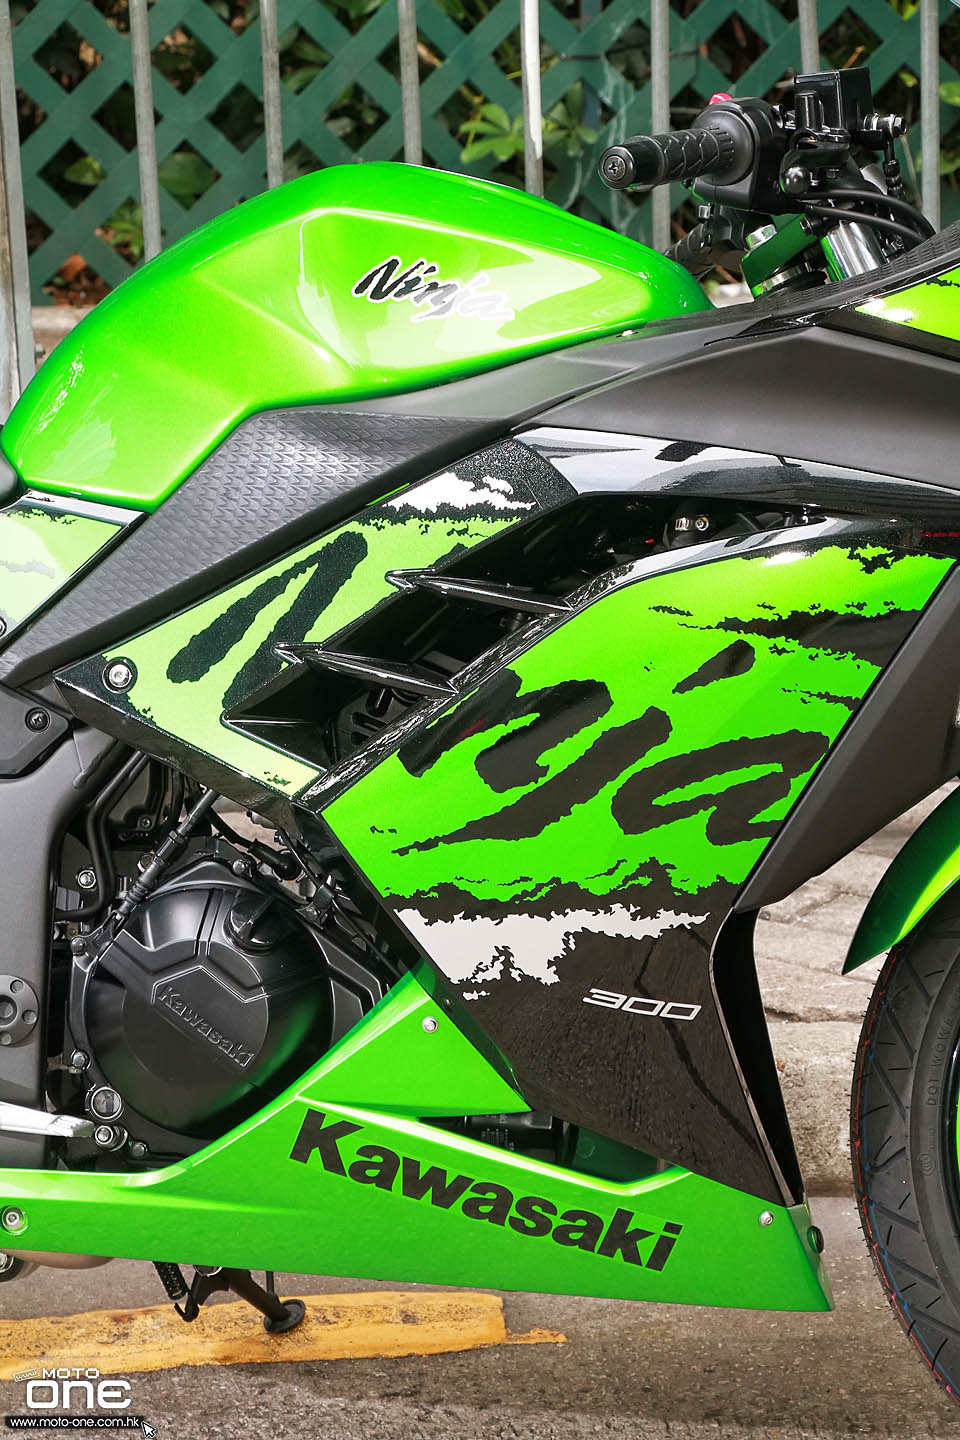 2017 KAWASAKI NINJA 300 ABS WINTER SP